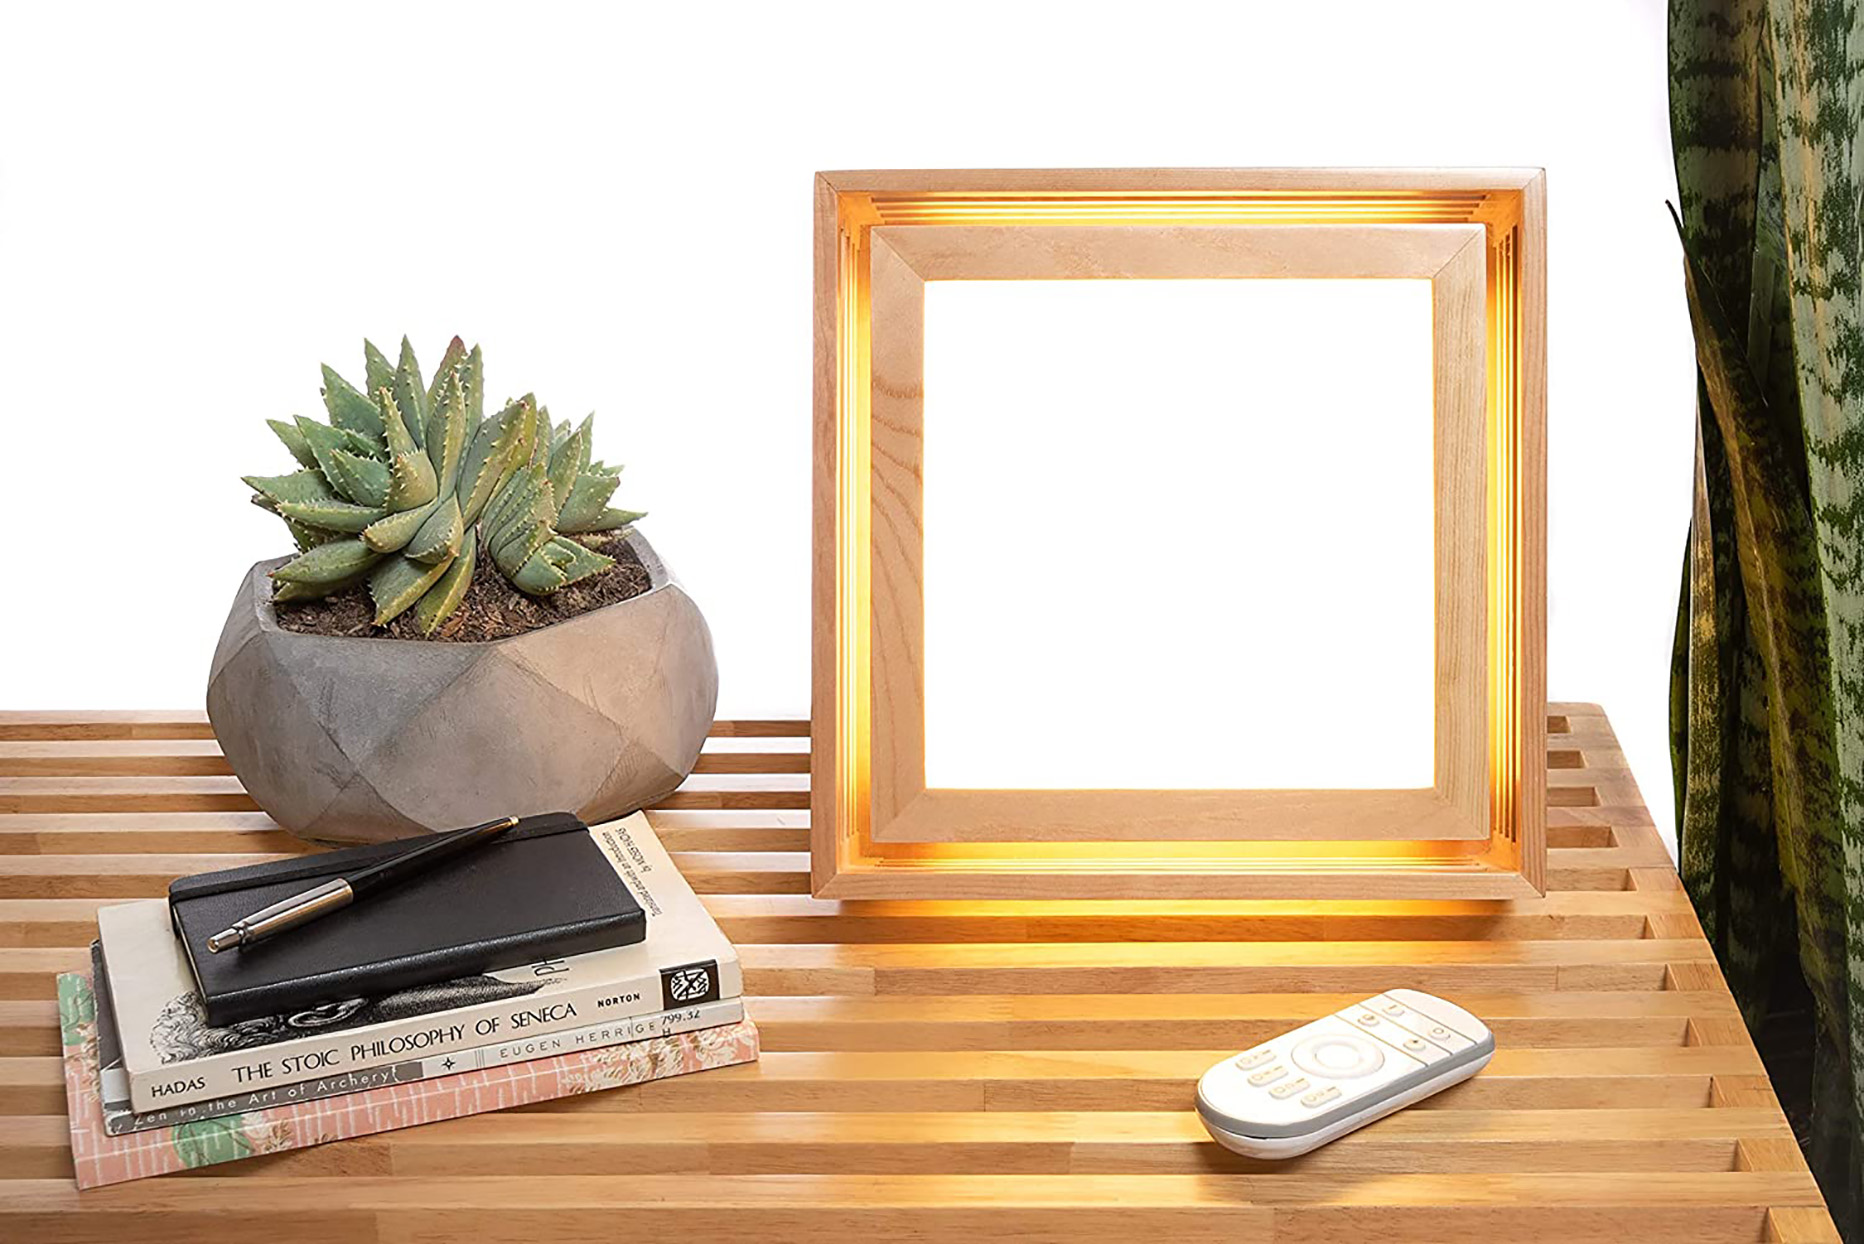 wood light therapy lamp on wood table